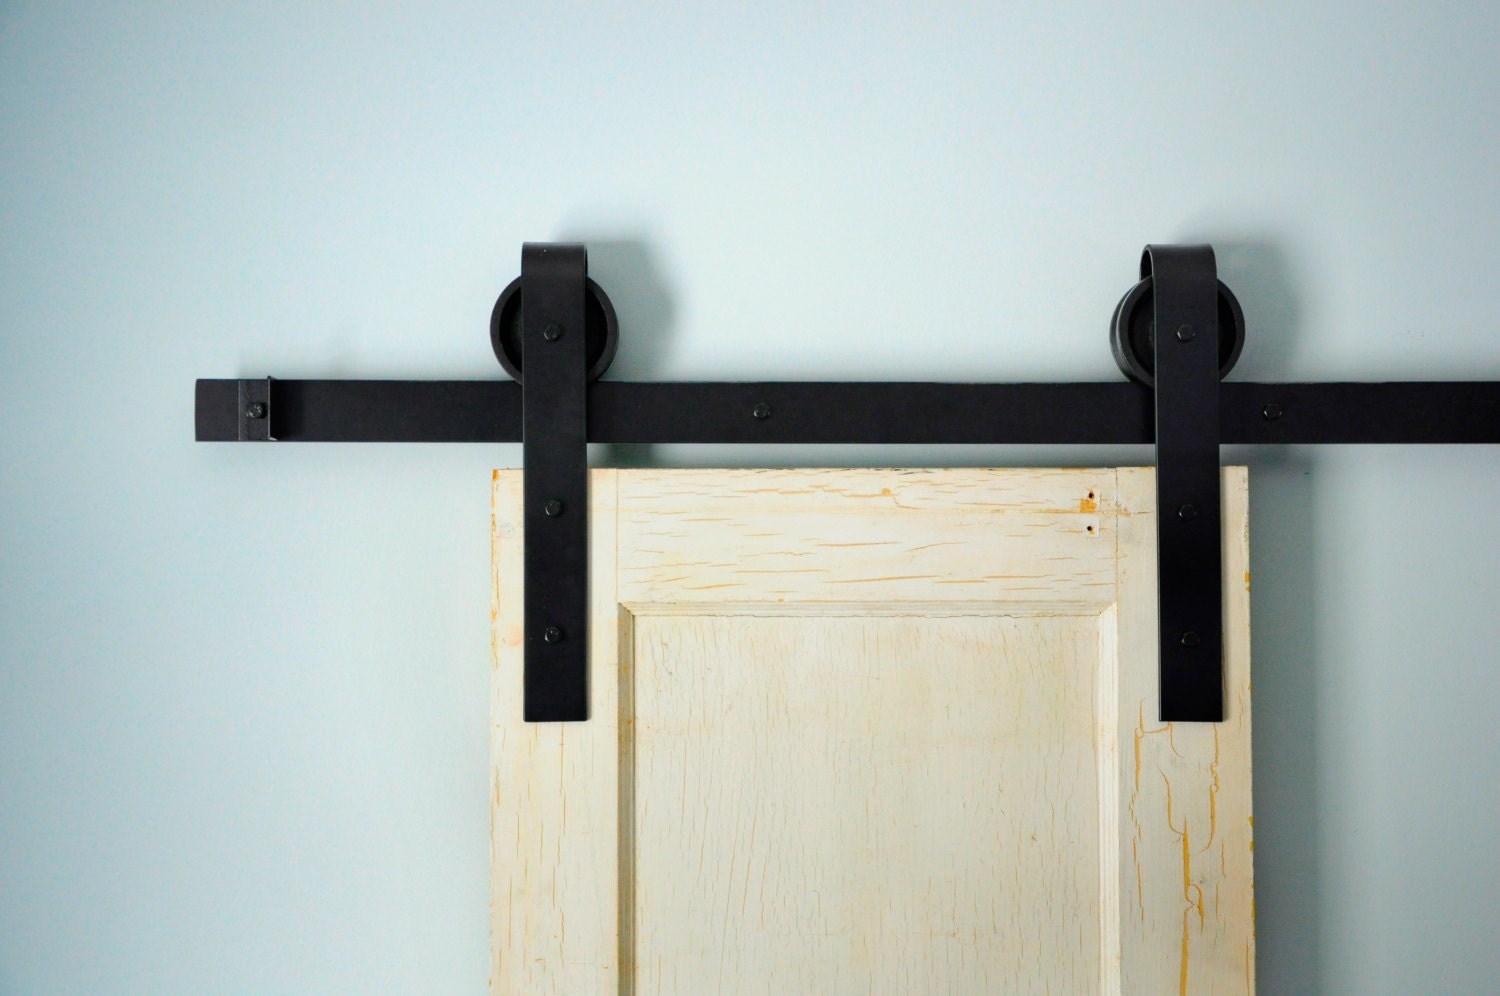 Barn door hardware kit by architecturalopening on etsy for Custom barn door kits